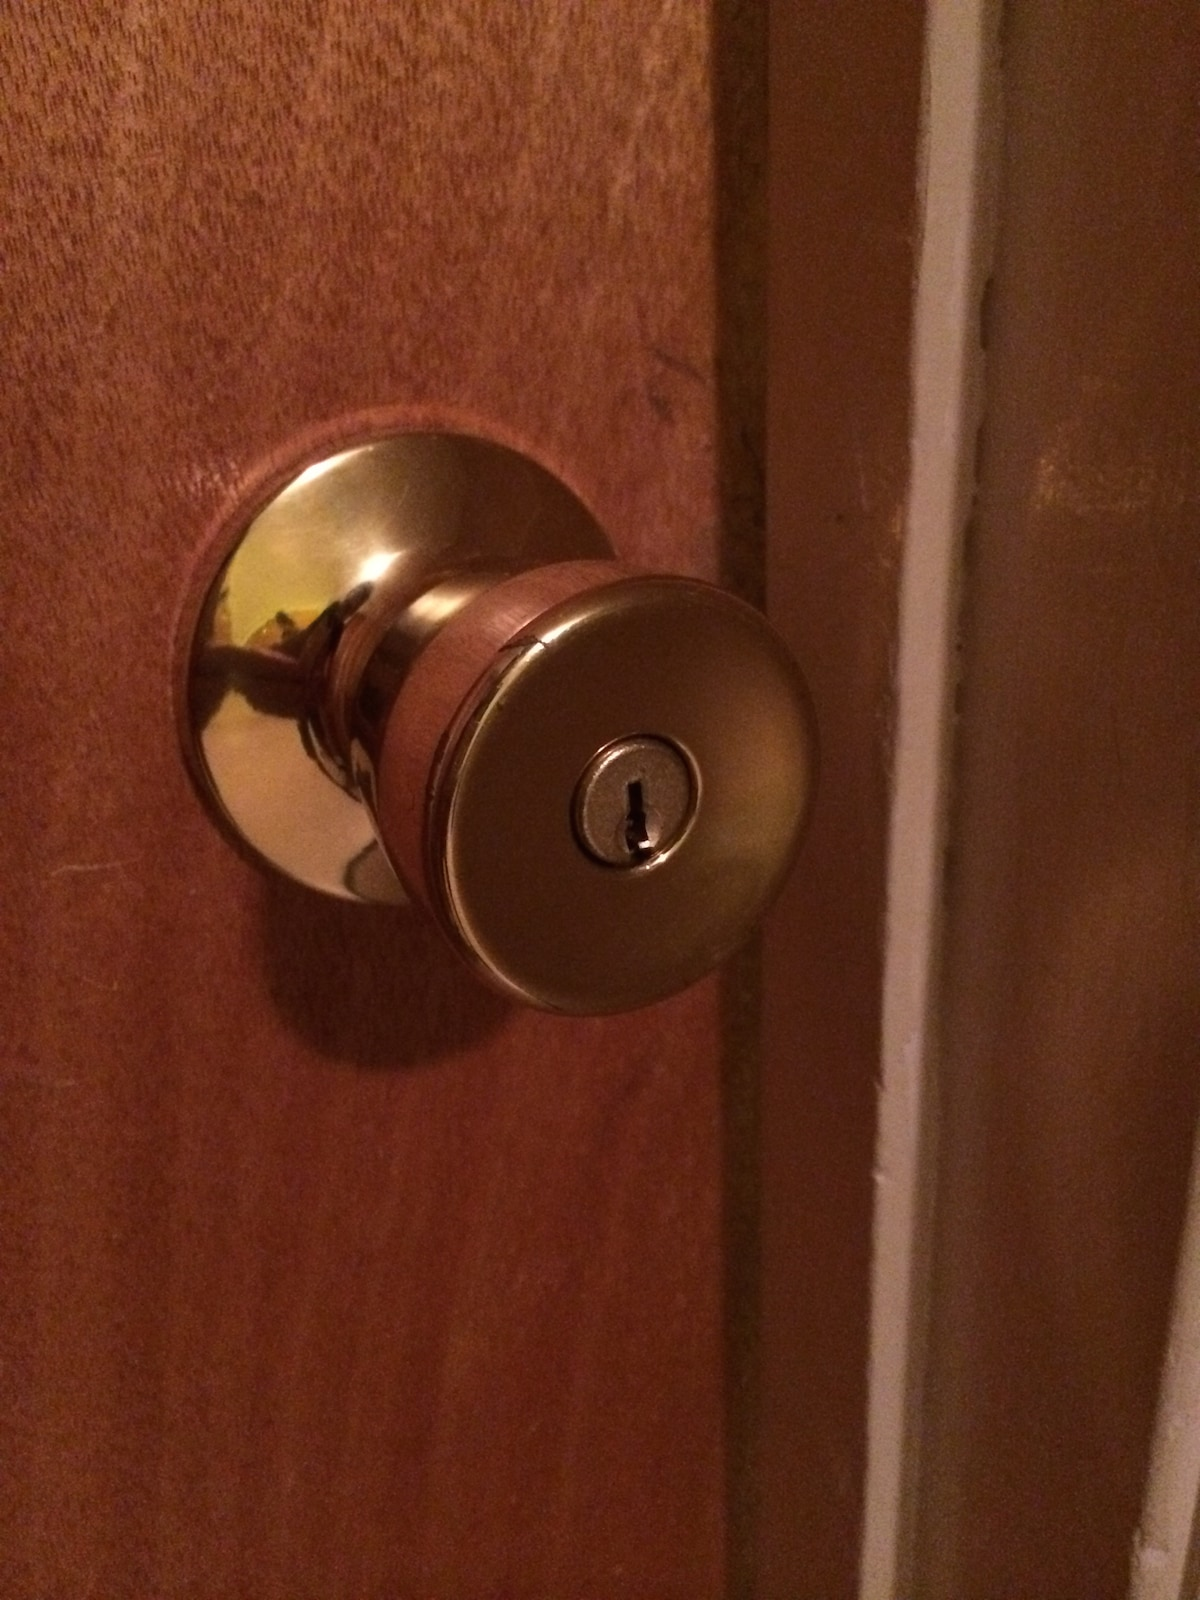 Feel free to lock your room.